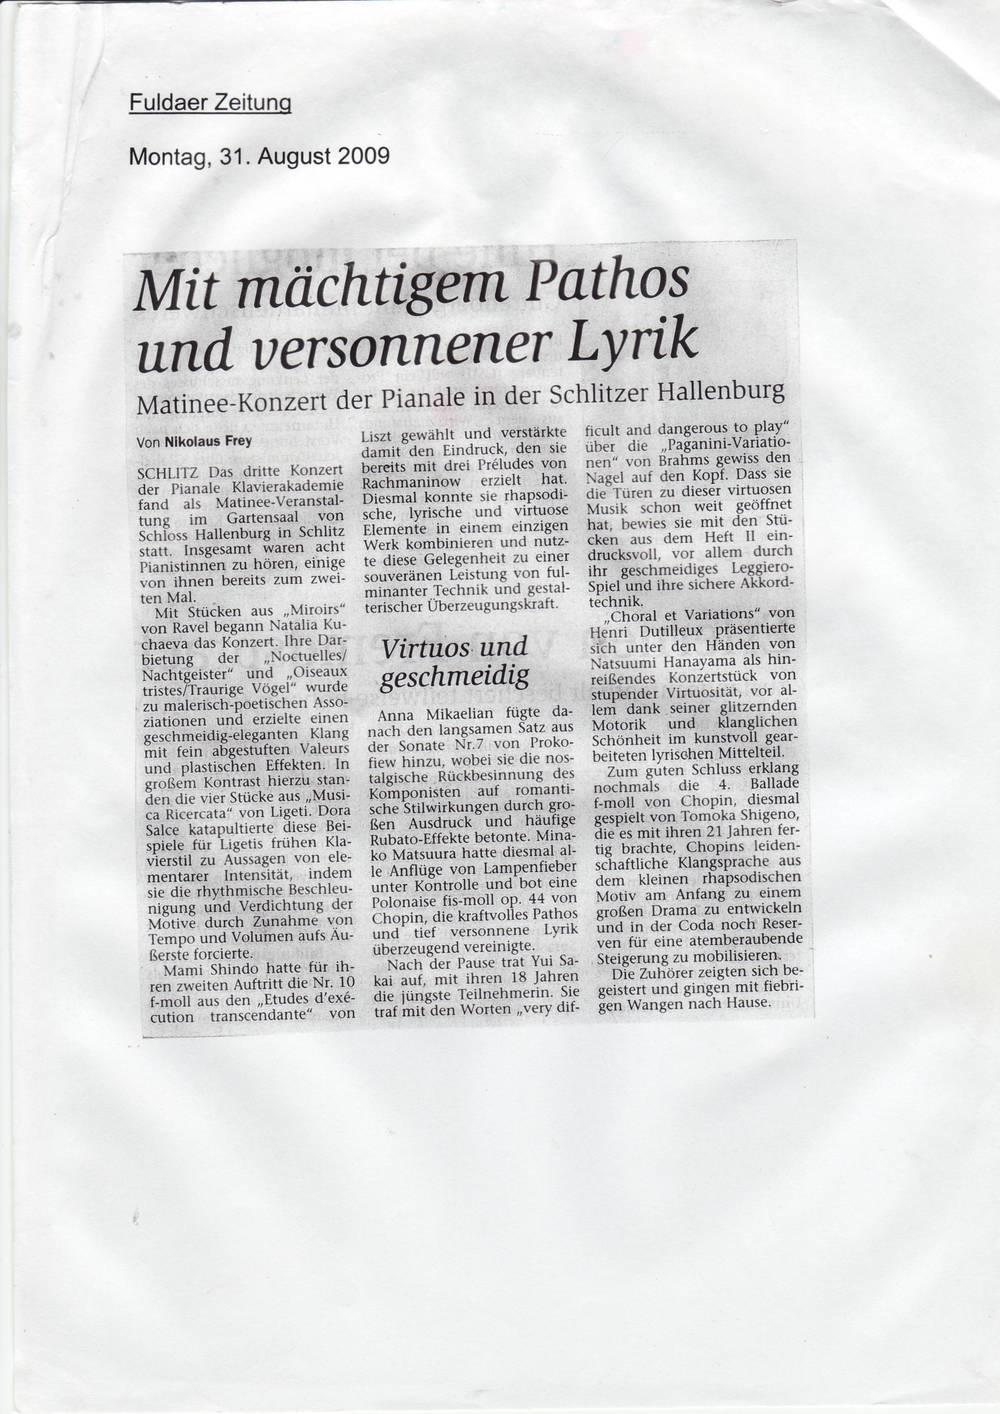 Fuldaer Zeitung (Germany) 31. August 2009.JPG